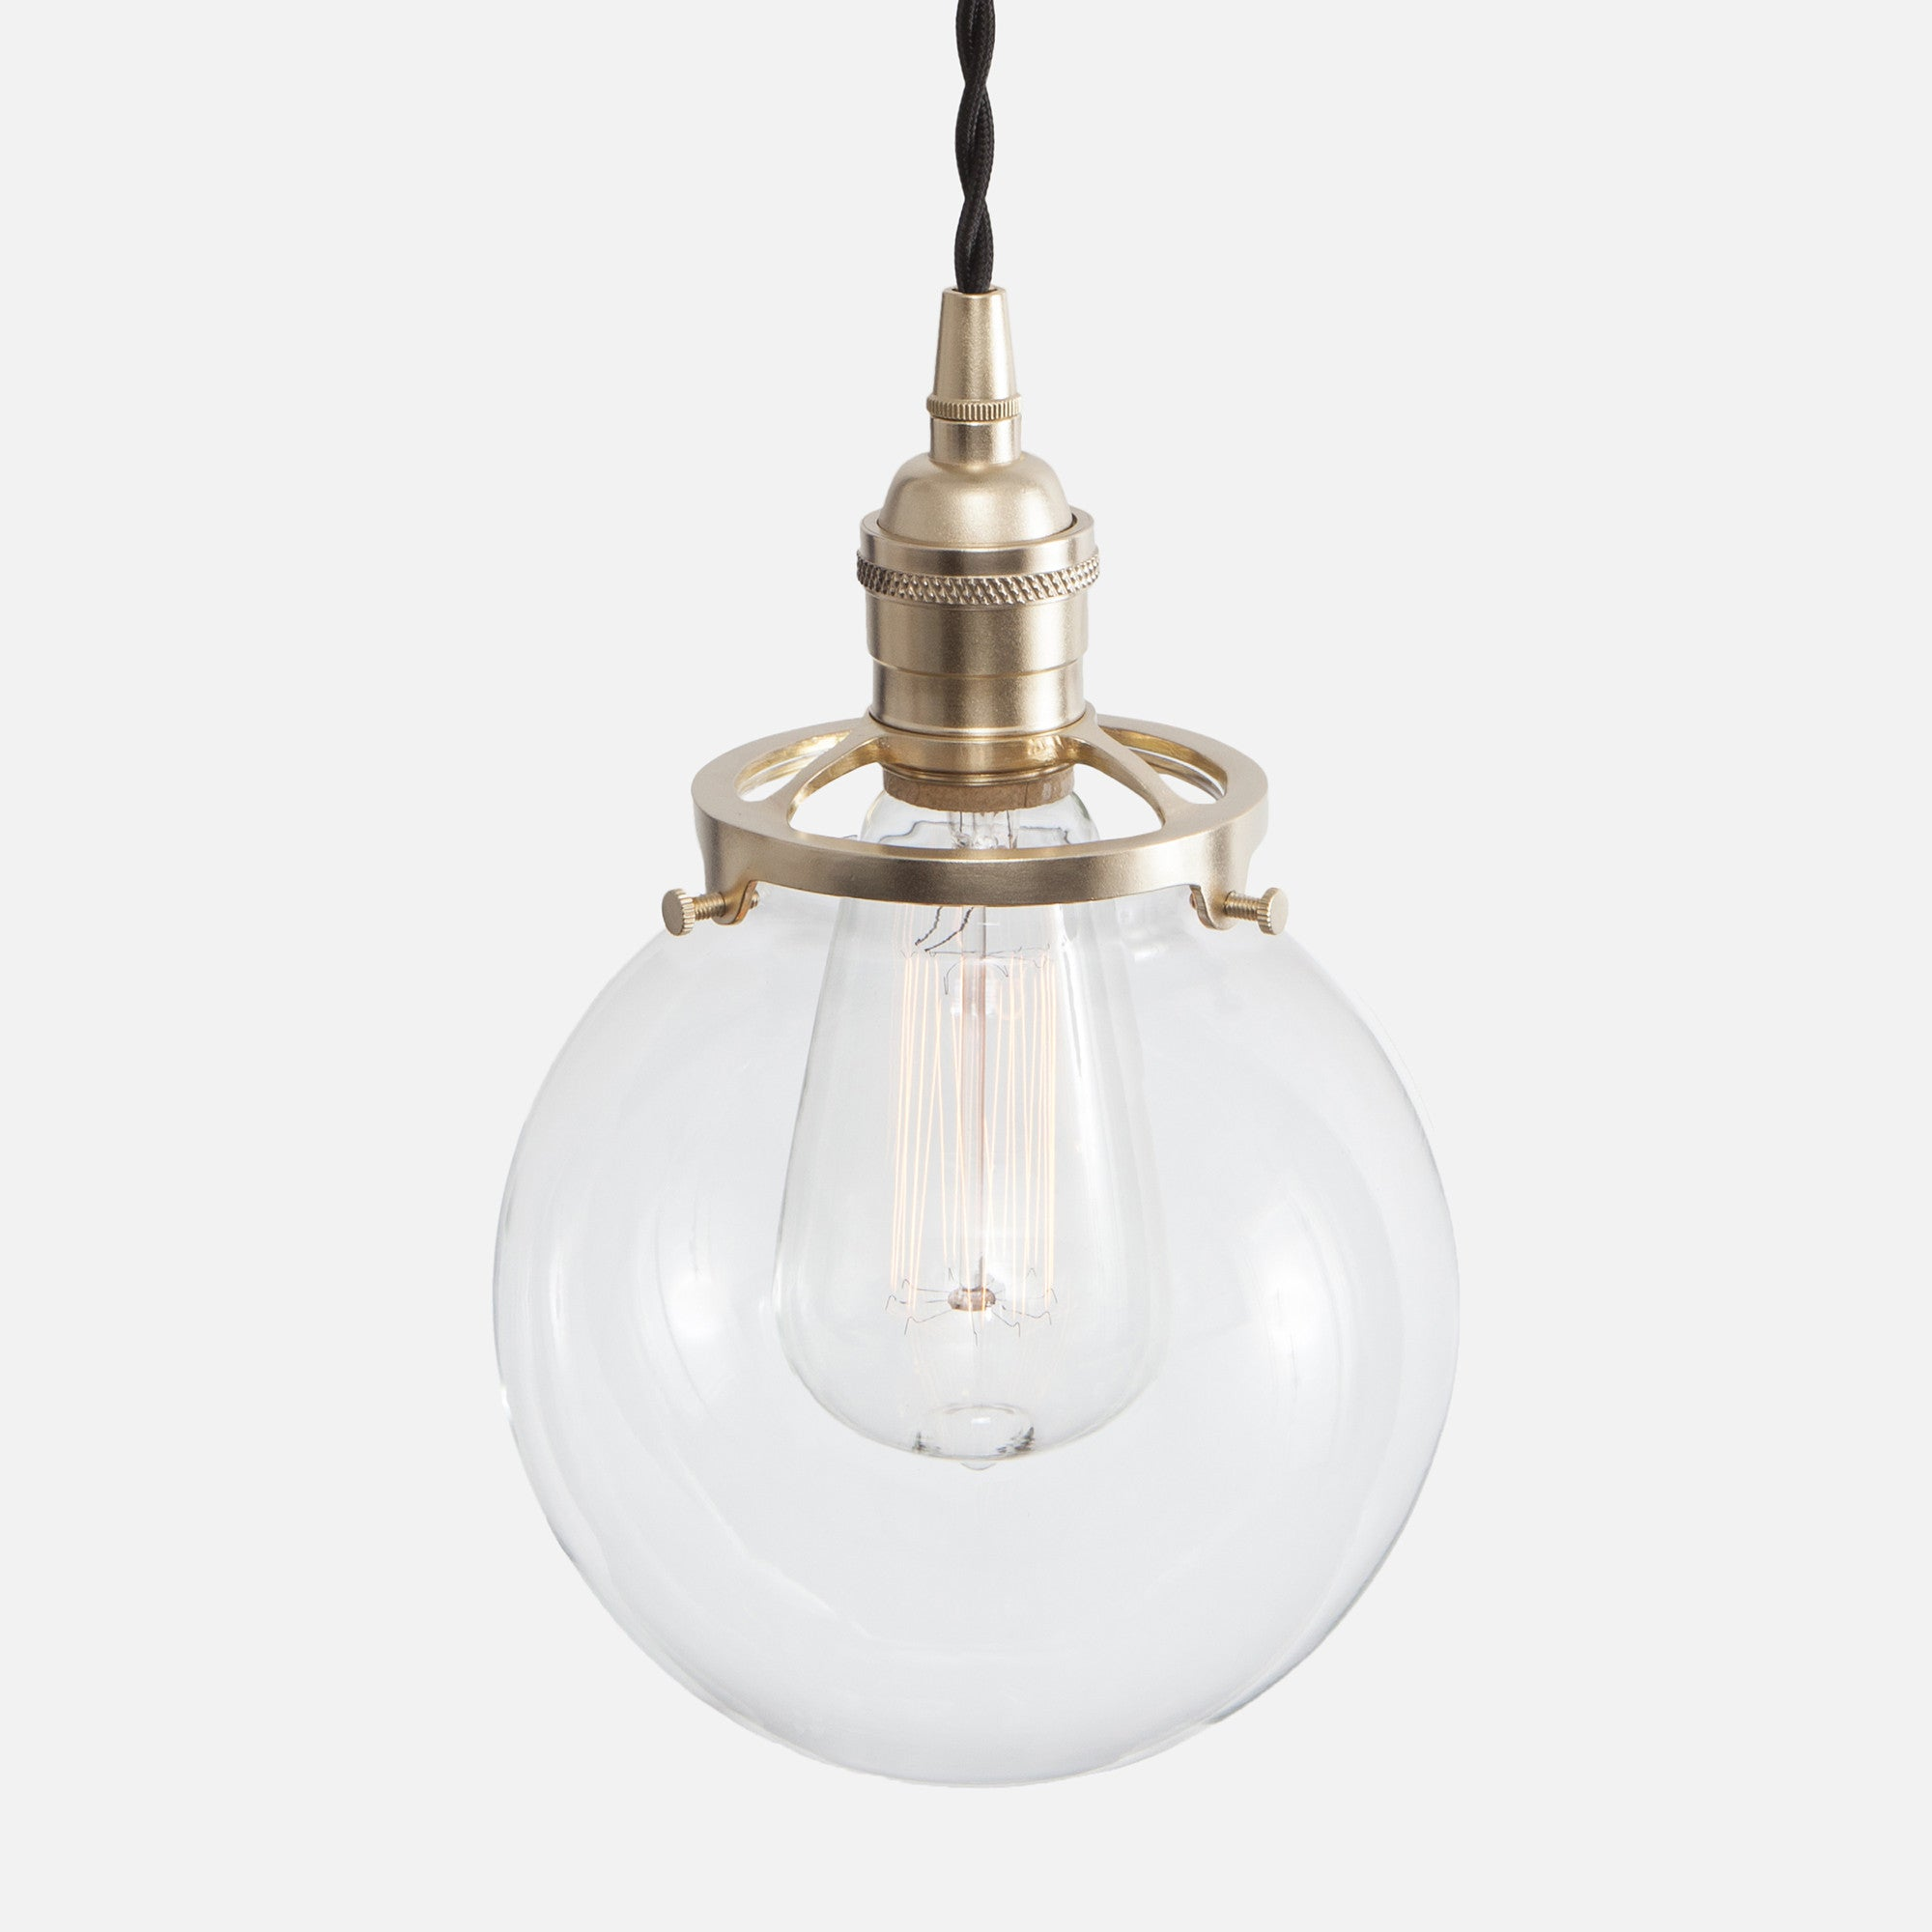 Clear Glass Globe Shade Pendant Light - Raw Brass Patina - Vintage Classic Socket